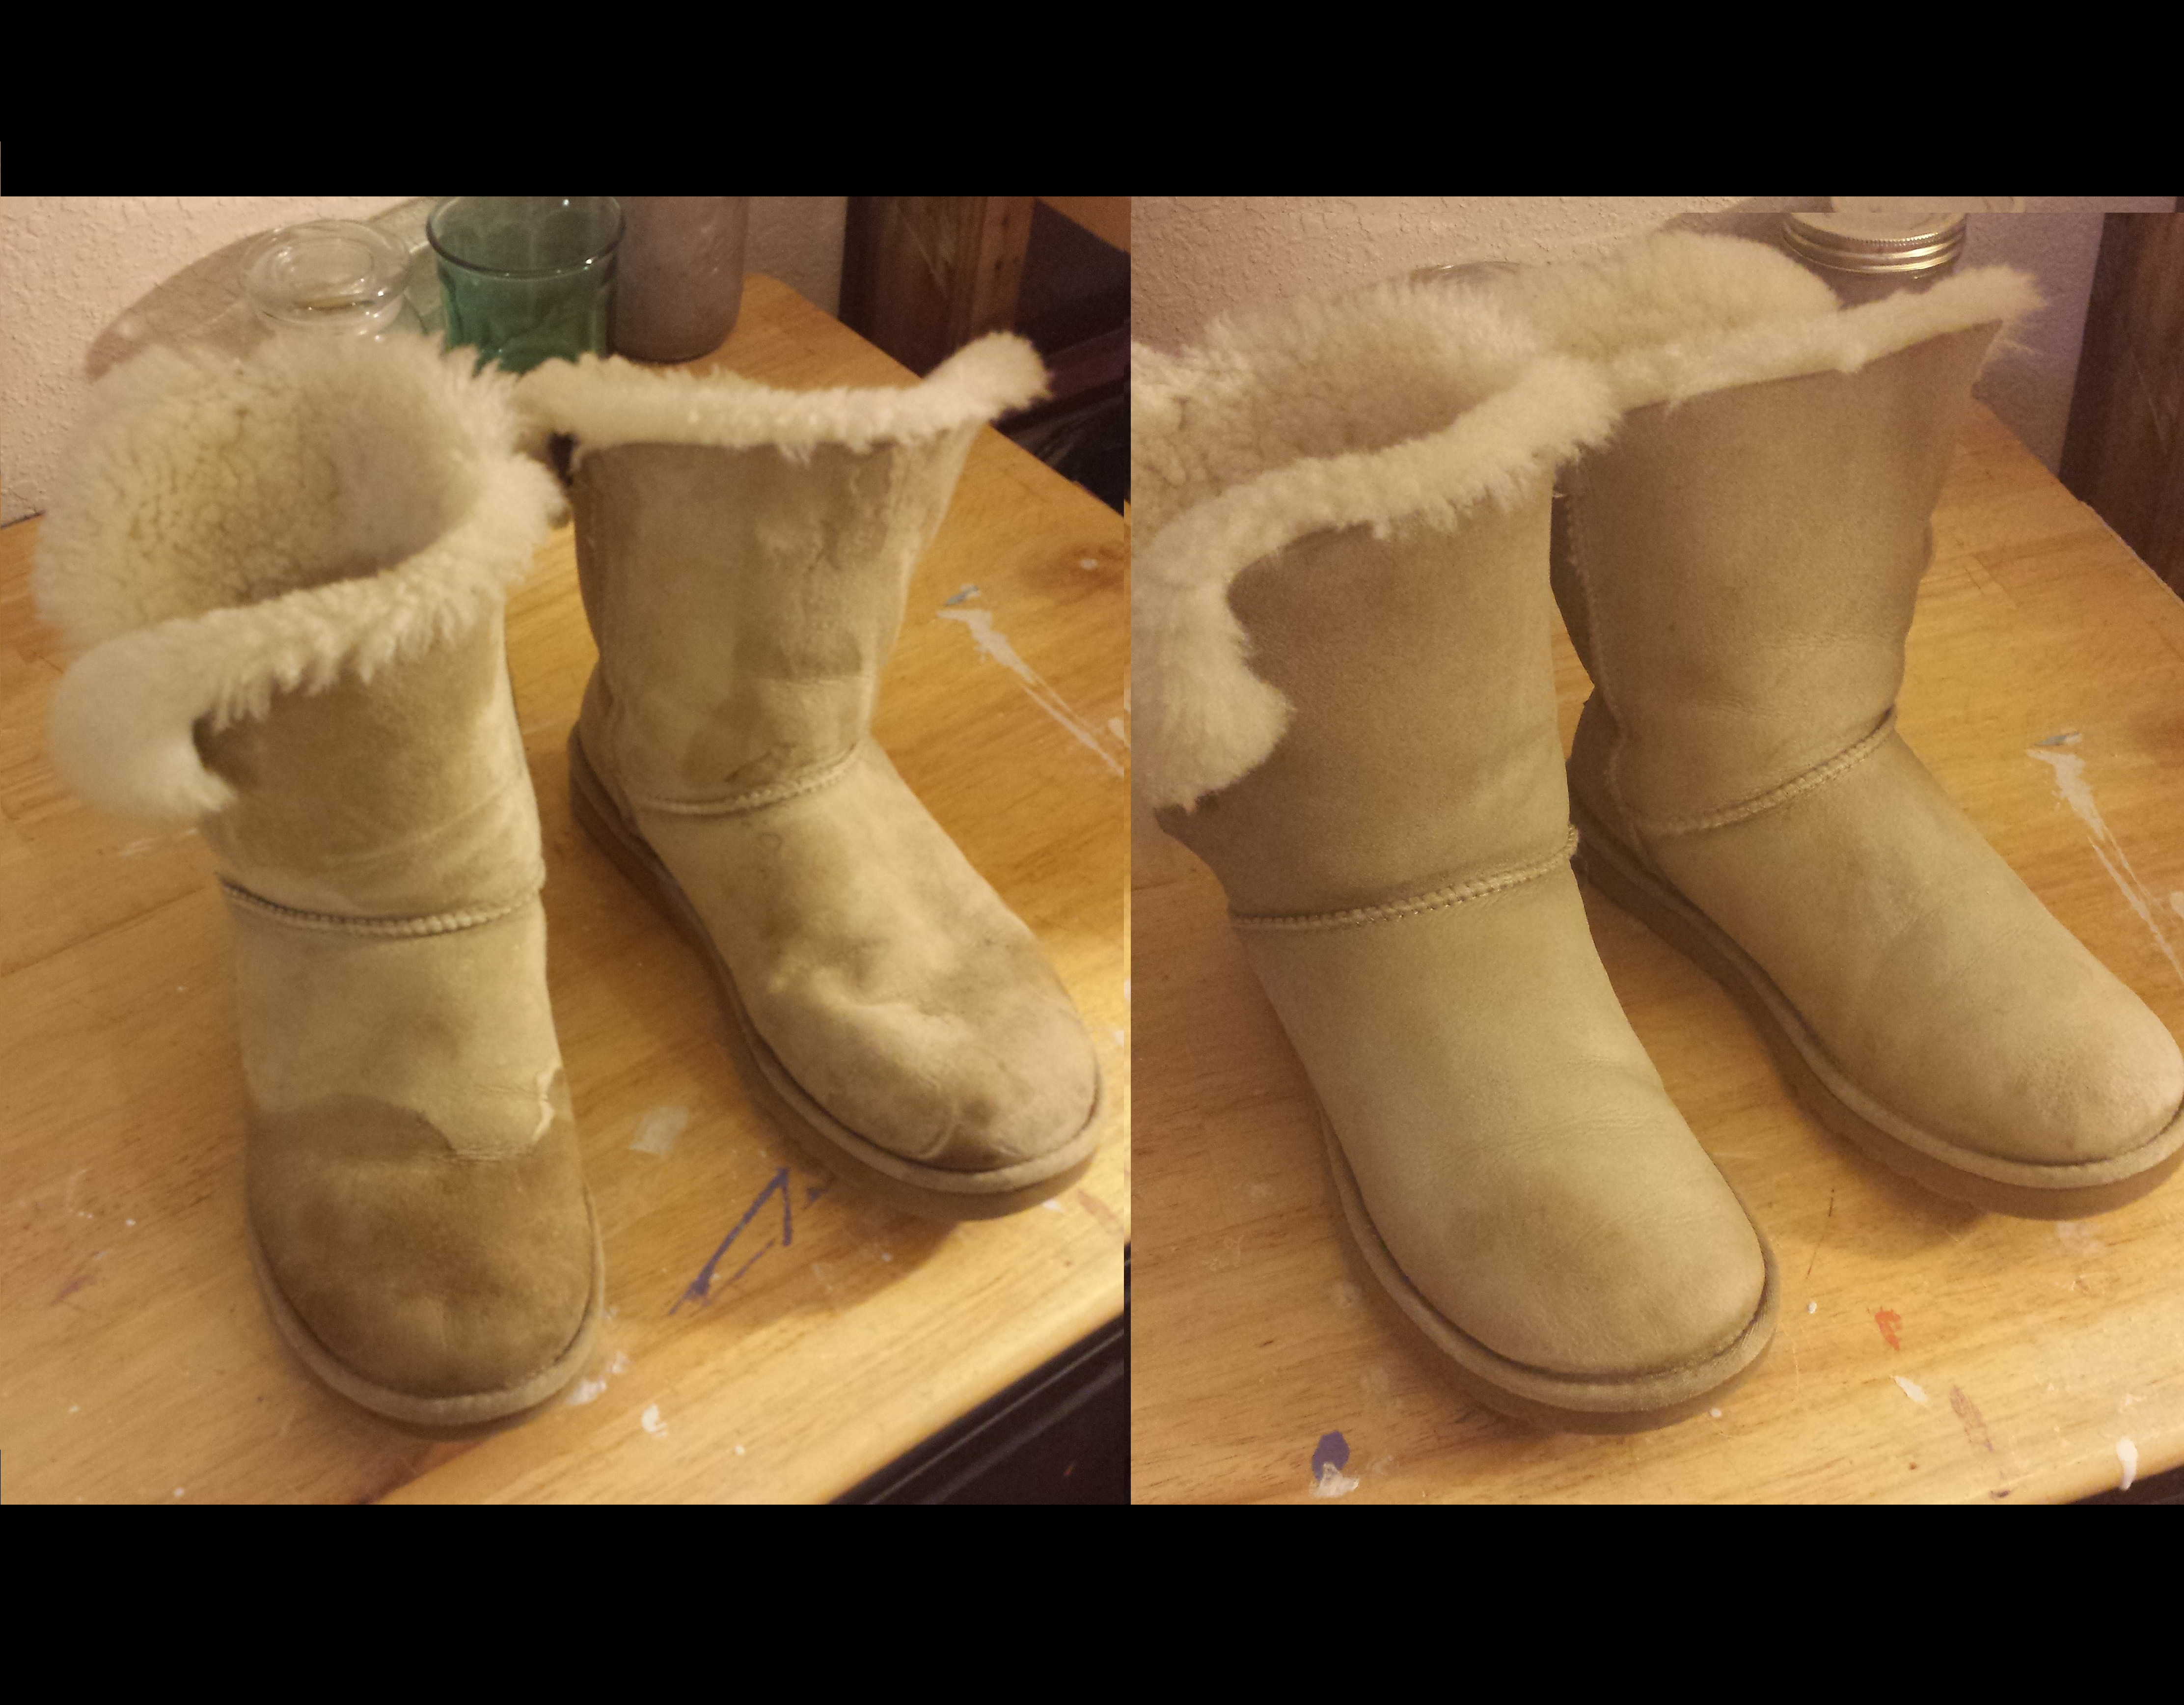 How to Clean Ugg Boots : 4 Steps (with